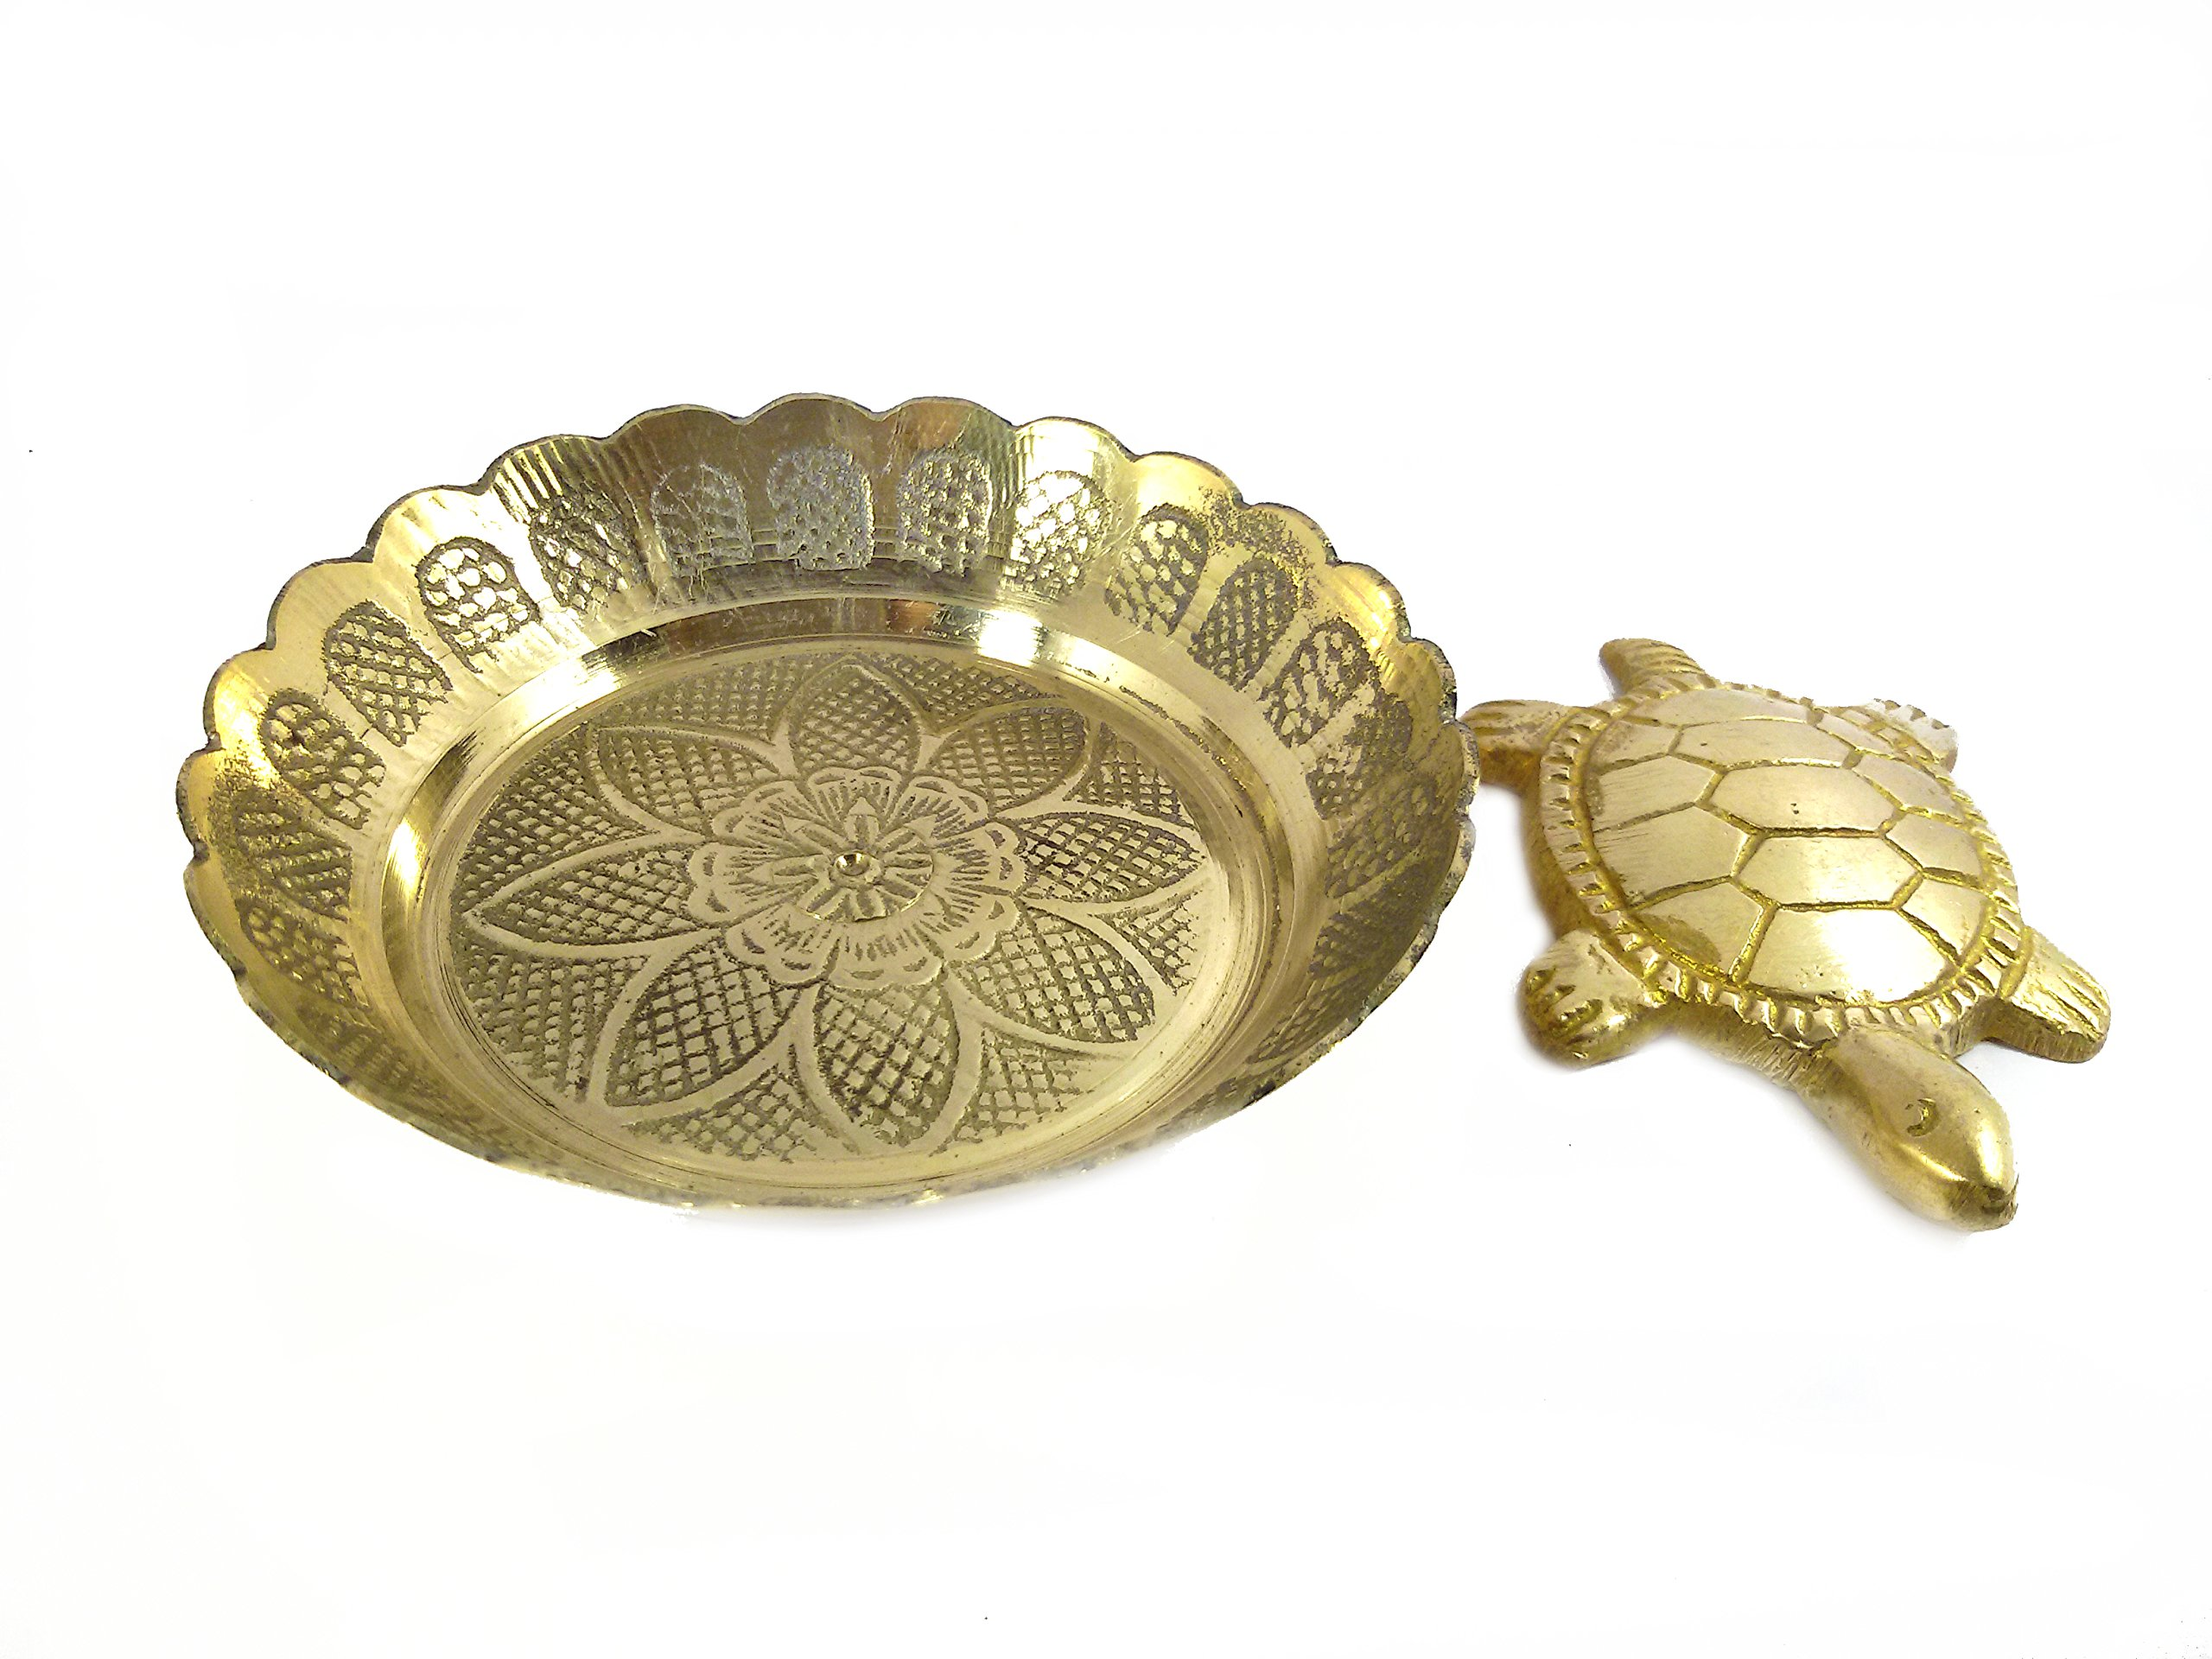 Pinnacle Golden Feng Shui Metal Tortoise with Metal and Glass Plate showpiece Lucky Charms Good Omens Good Health Save Now